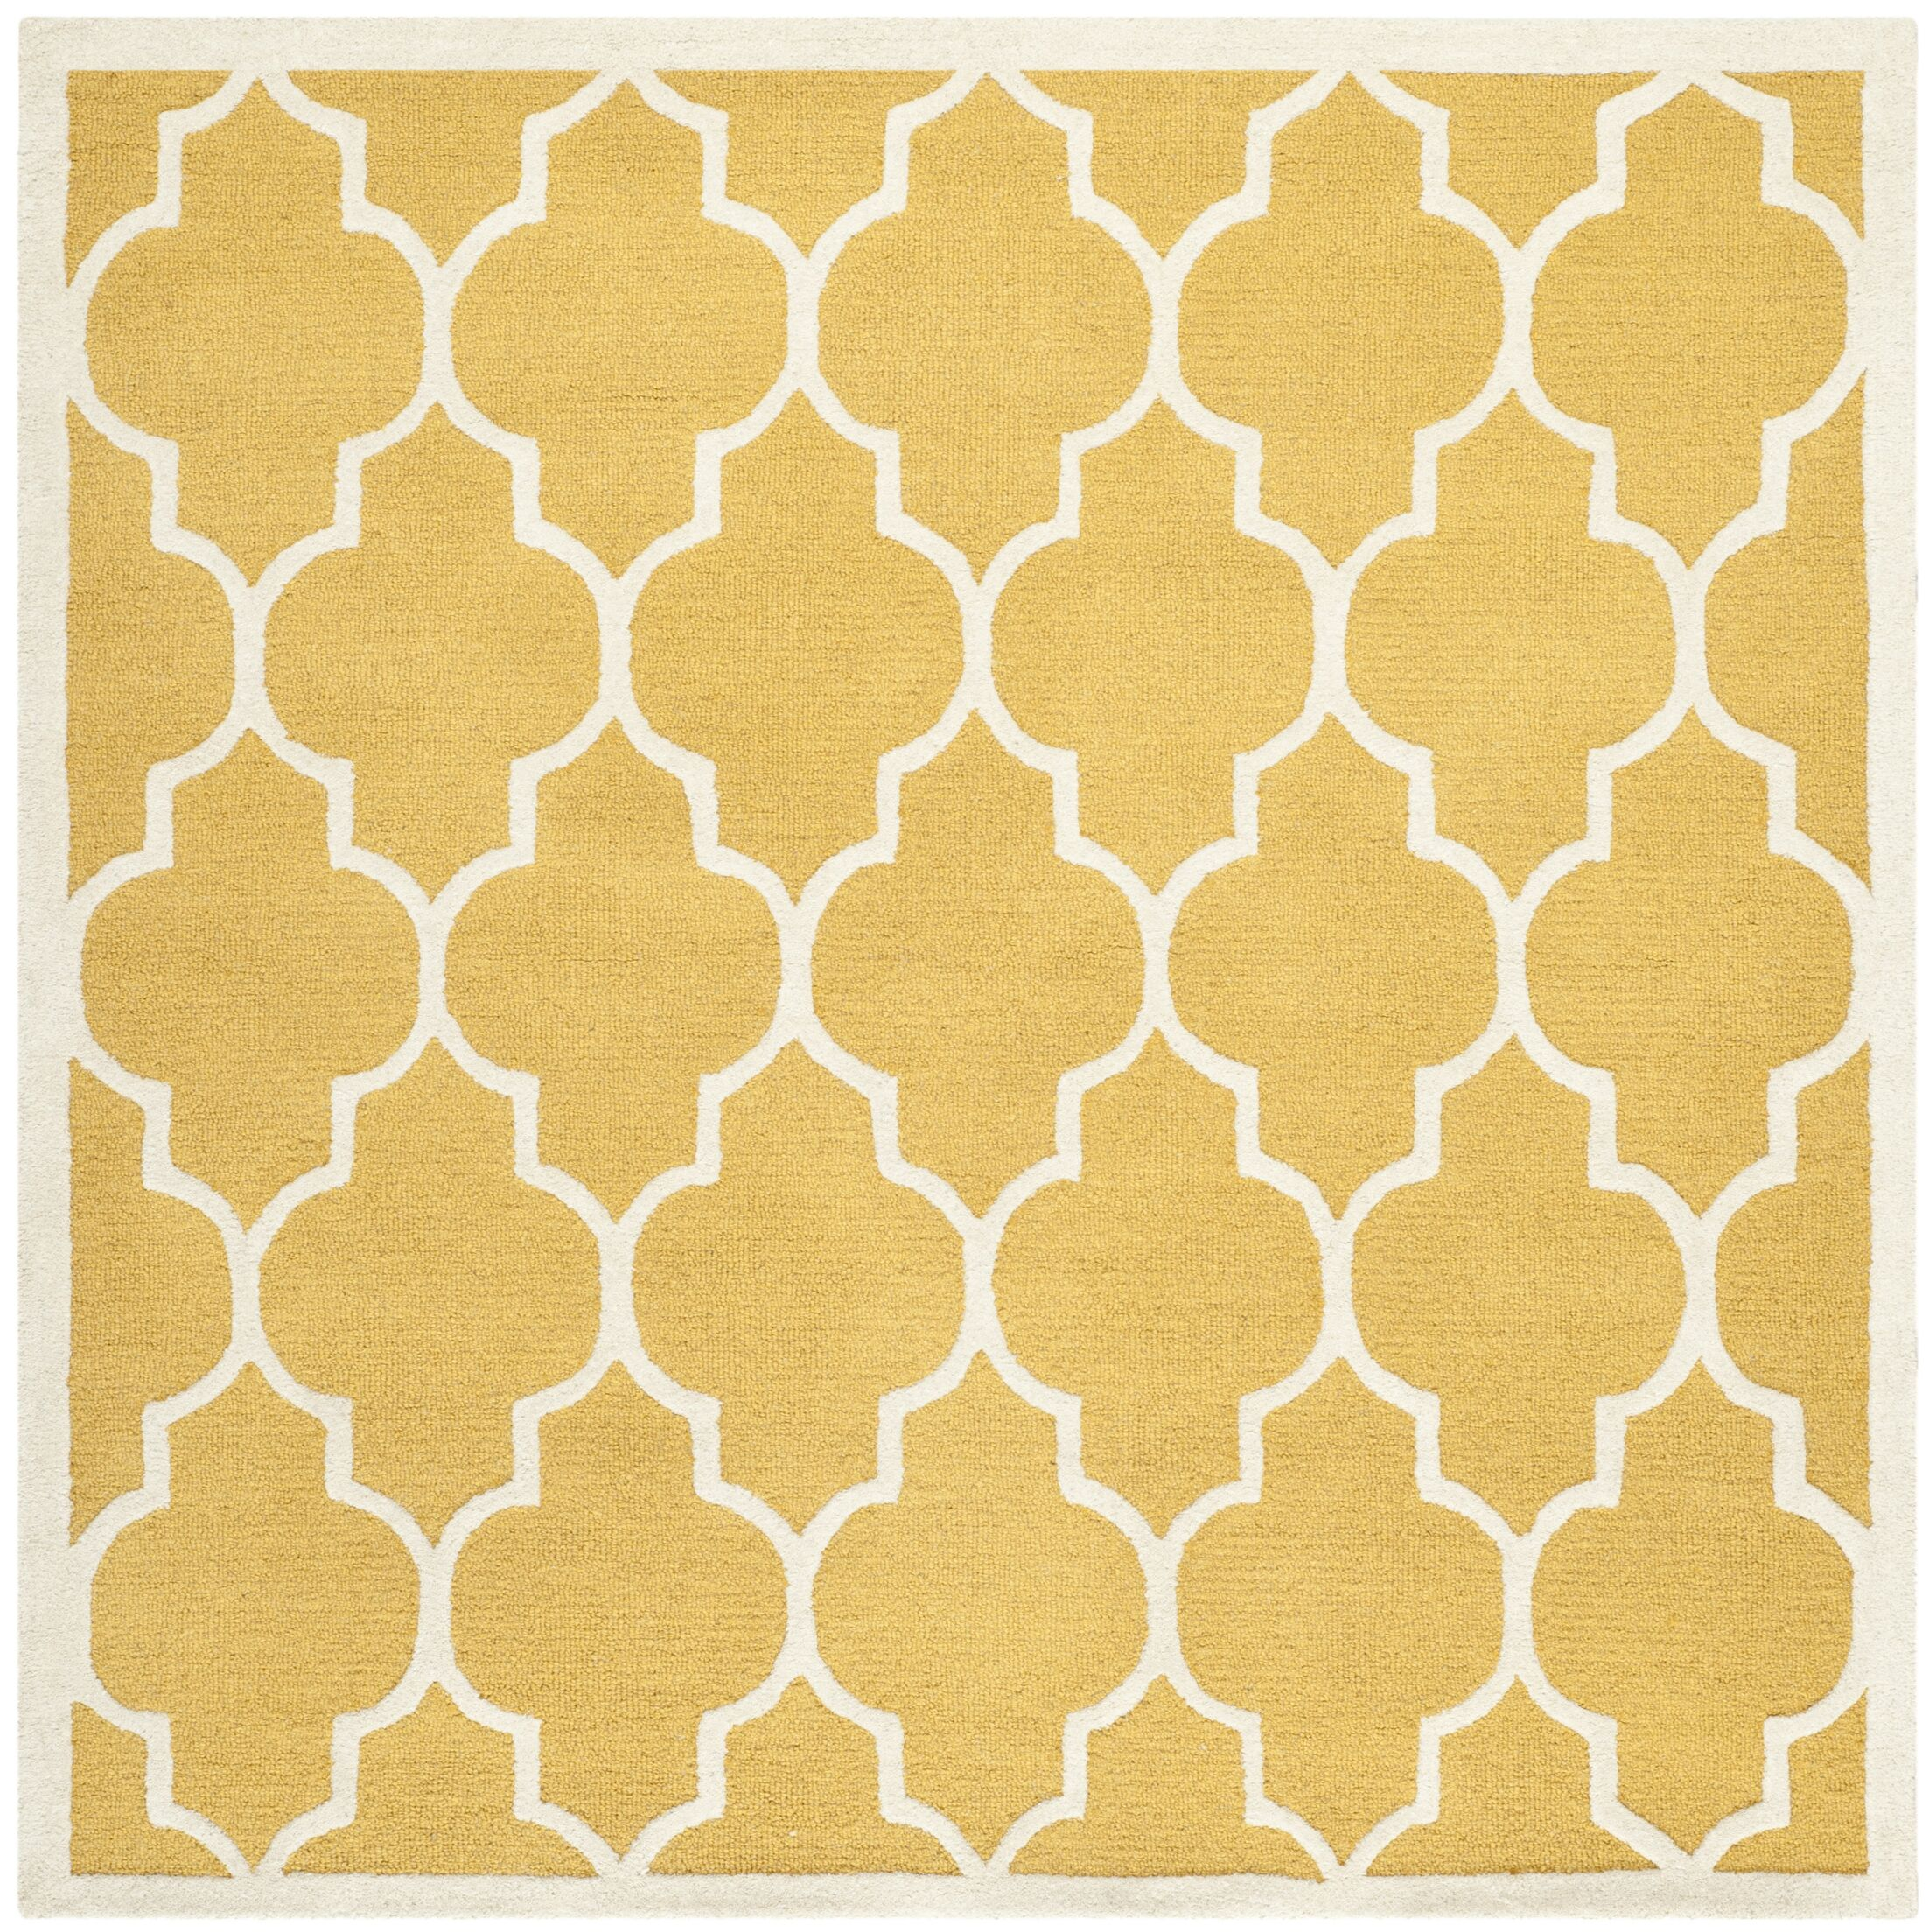 Parker Lane Hand-Tufted Wool Gold/Ivory Area Rug Rug Size: Square 6'